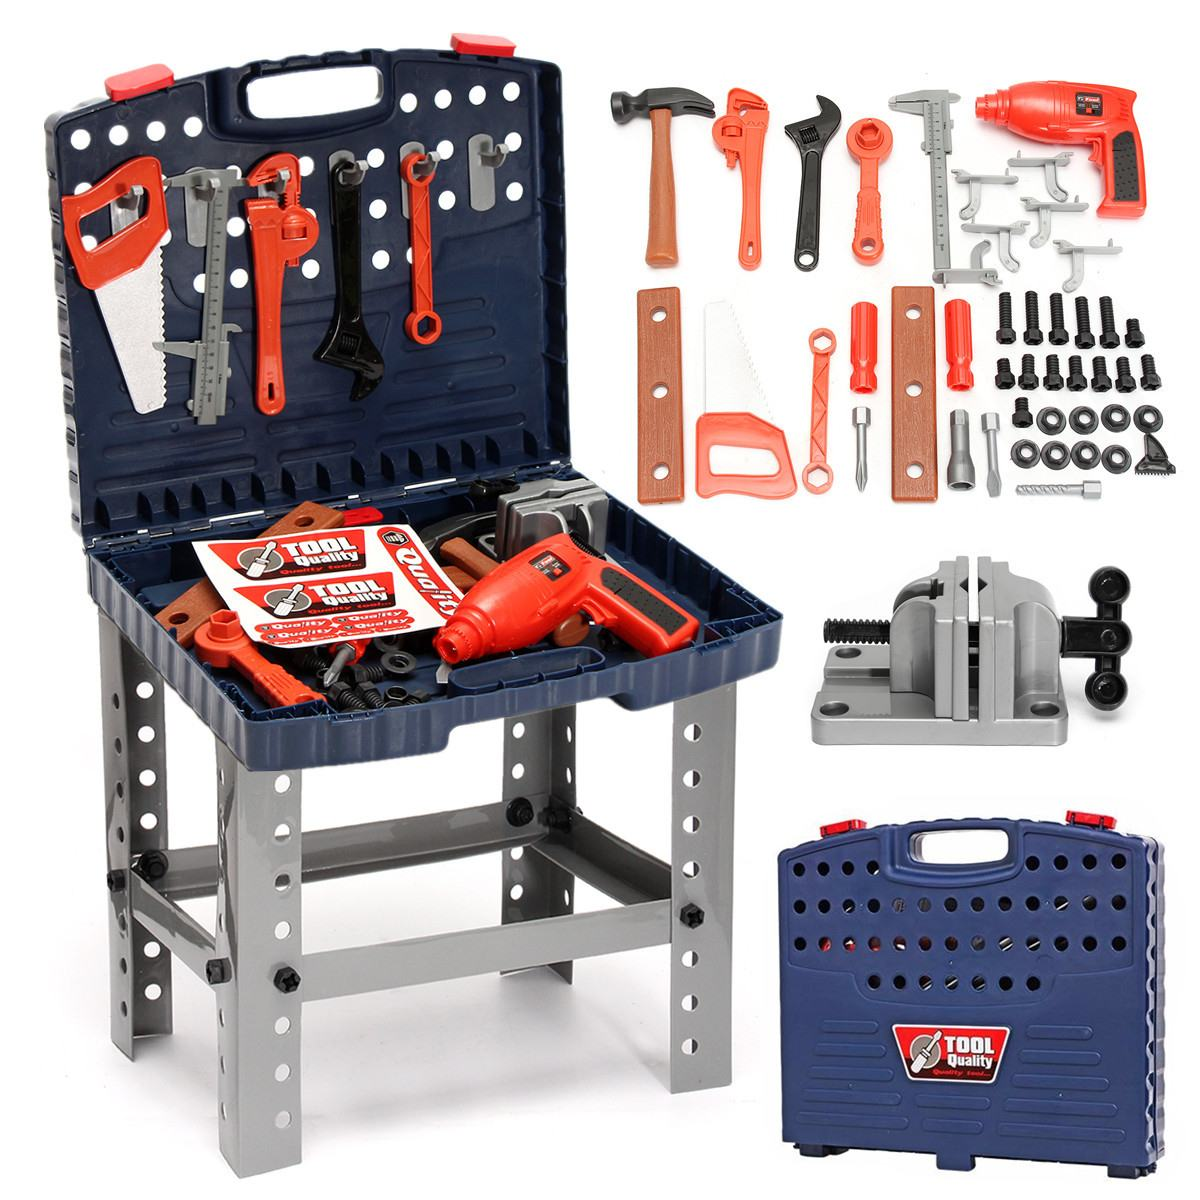 69Pcs Children's Tool Box Foldable Work Bench With Repair Tools Set Mutifunctional Kids Baby Role Play Toy Plastic Hand Tools